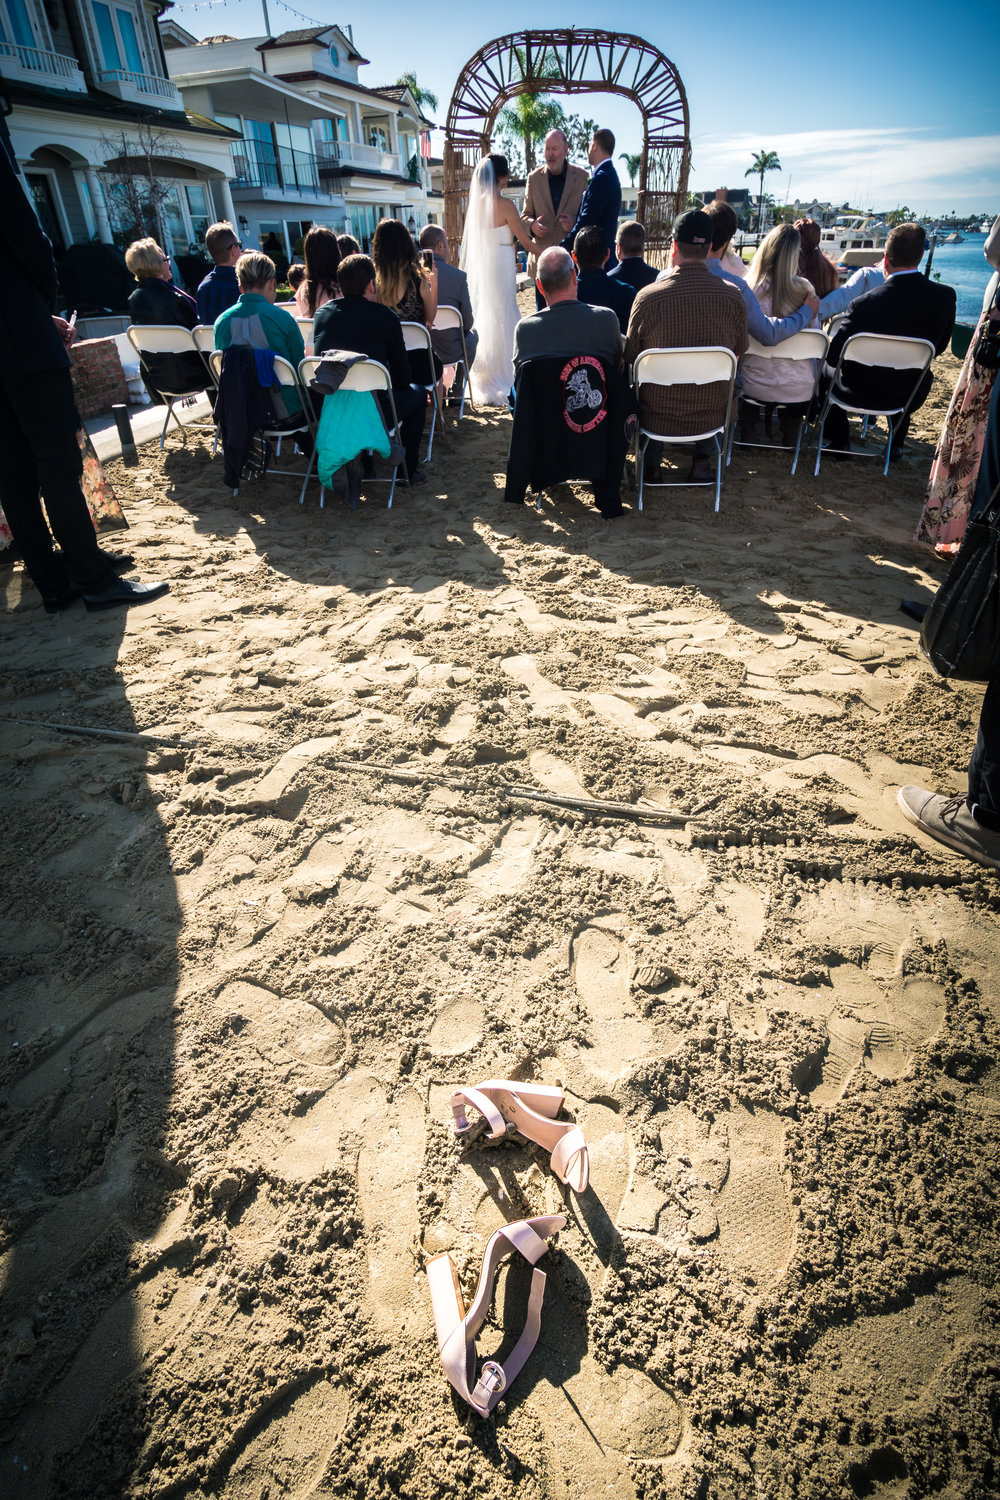 The bride shoes in the sand on the beach during the wedding ceremony on Balboa Island